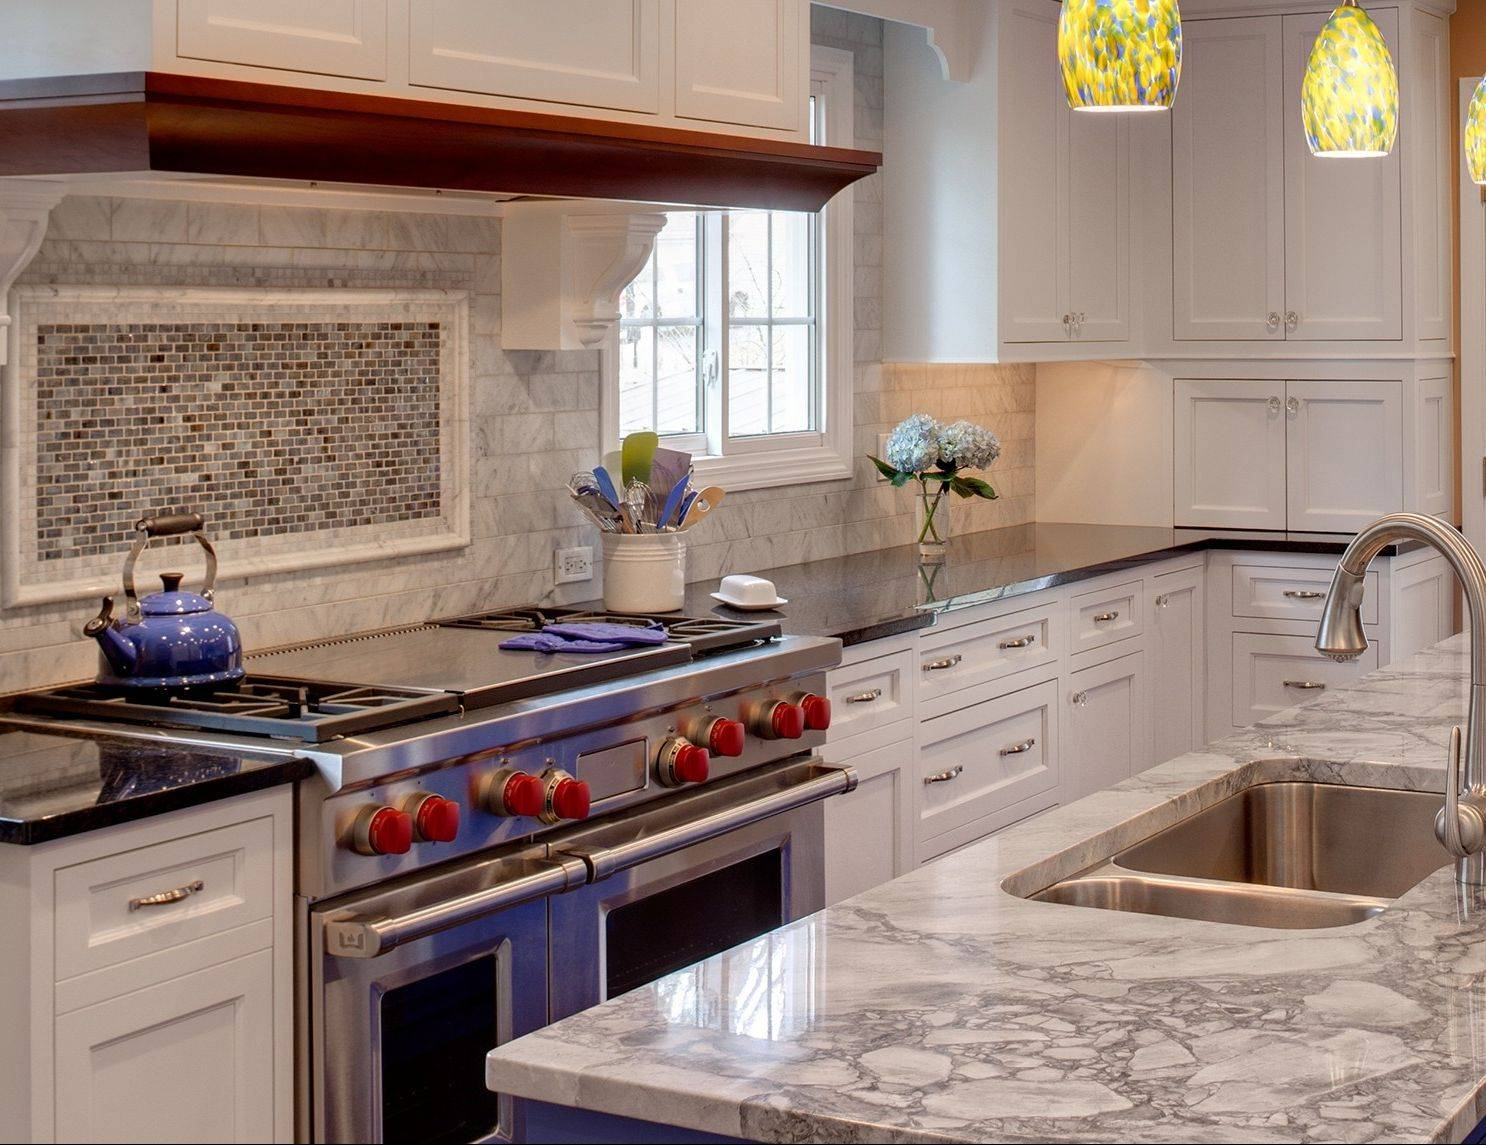 Terry Kenney decided white perimeter cabinets and a gray and white granite island countertop help subdue the blue of the island cabinets.